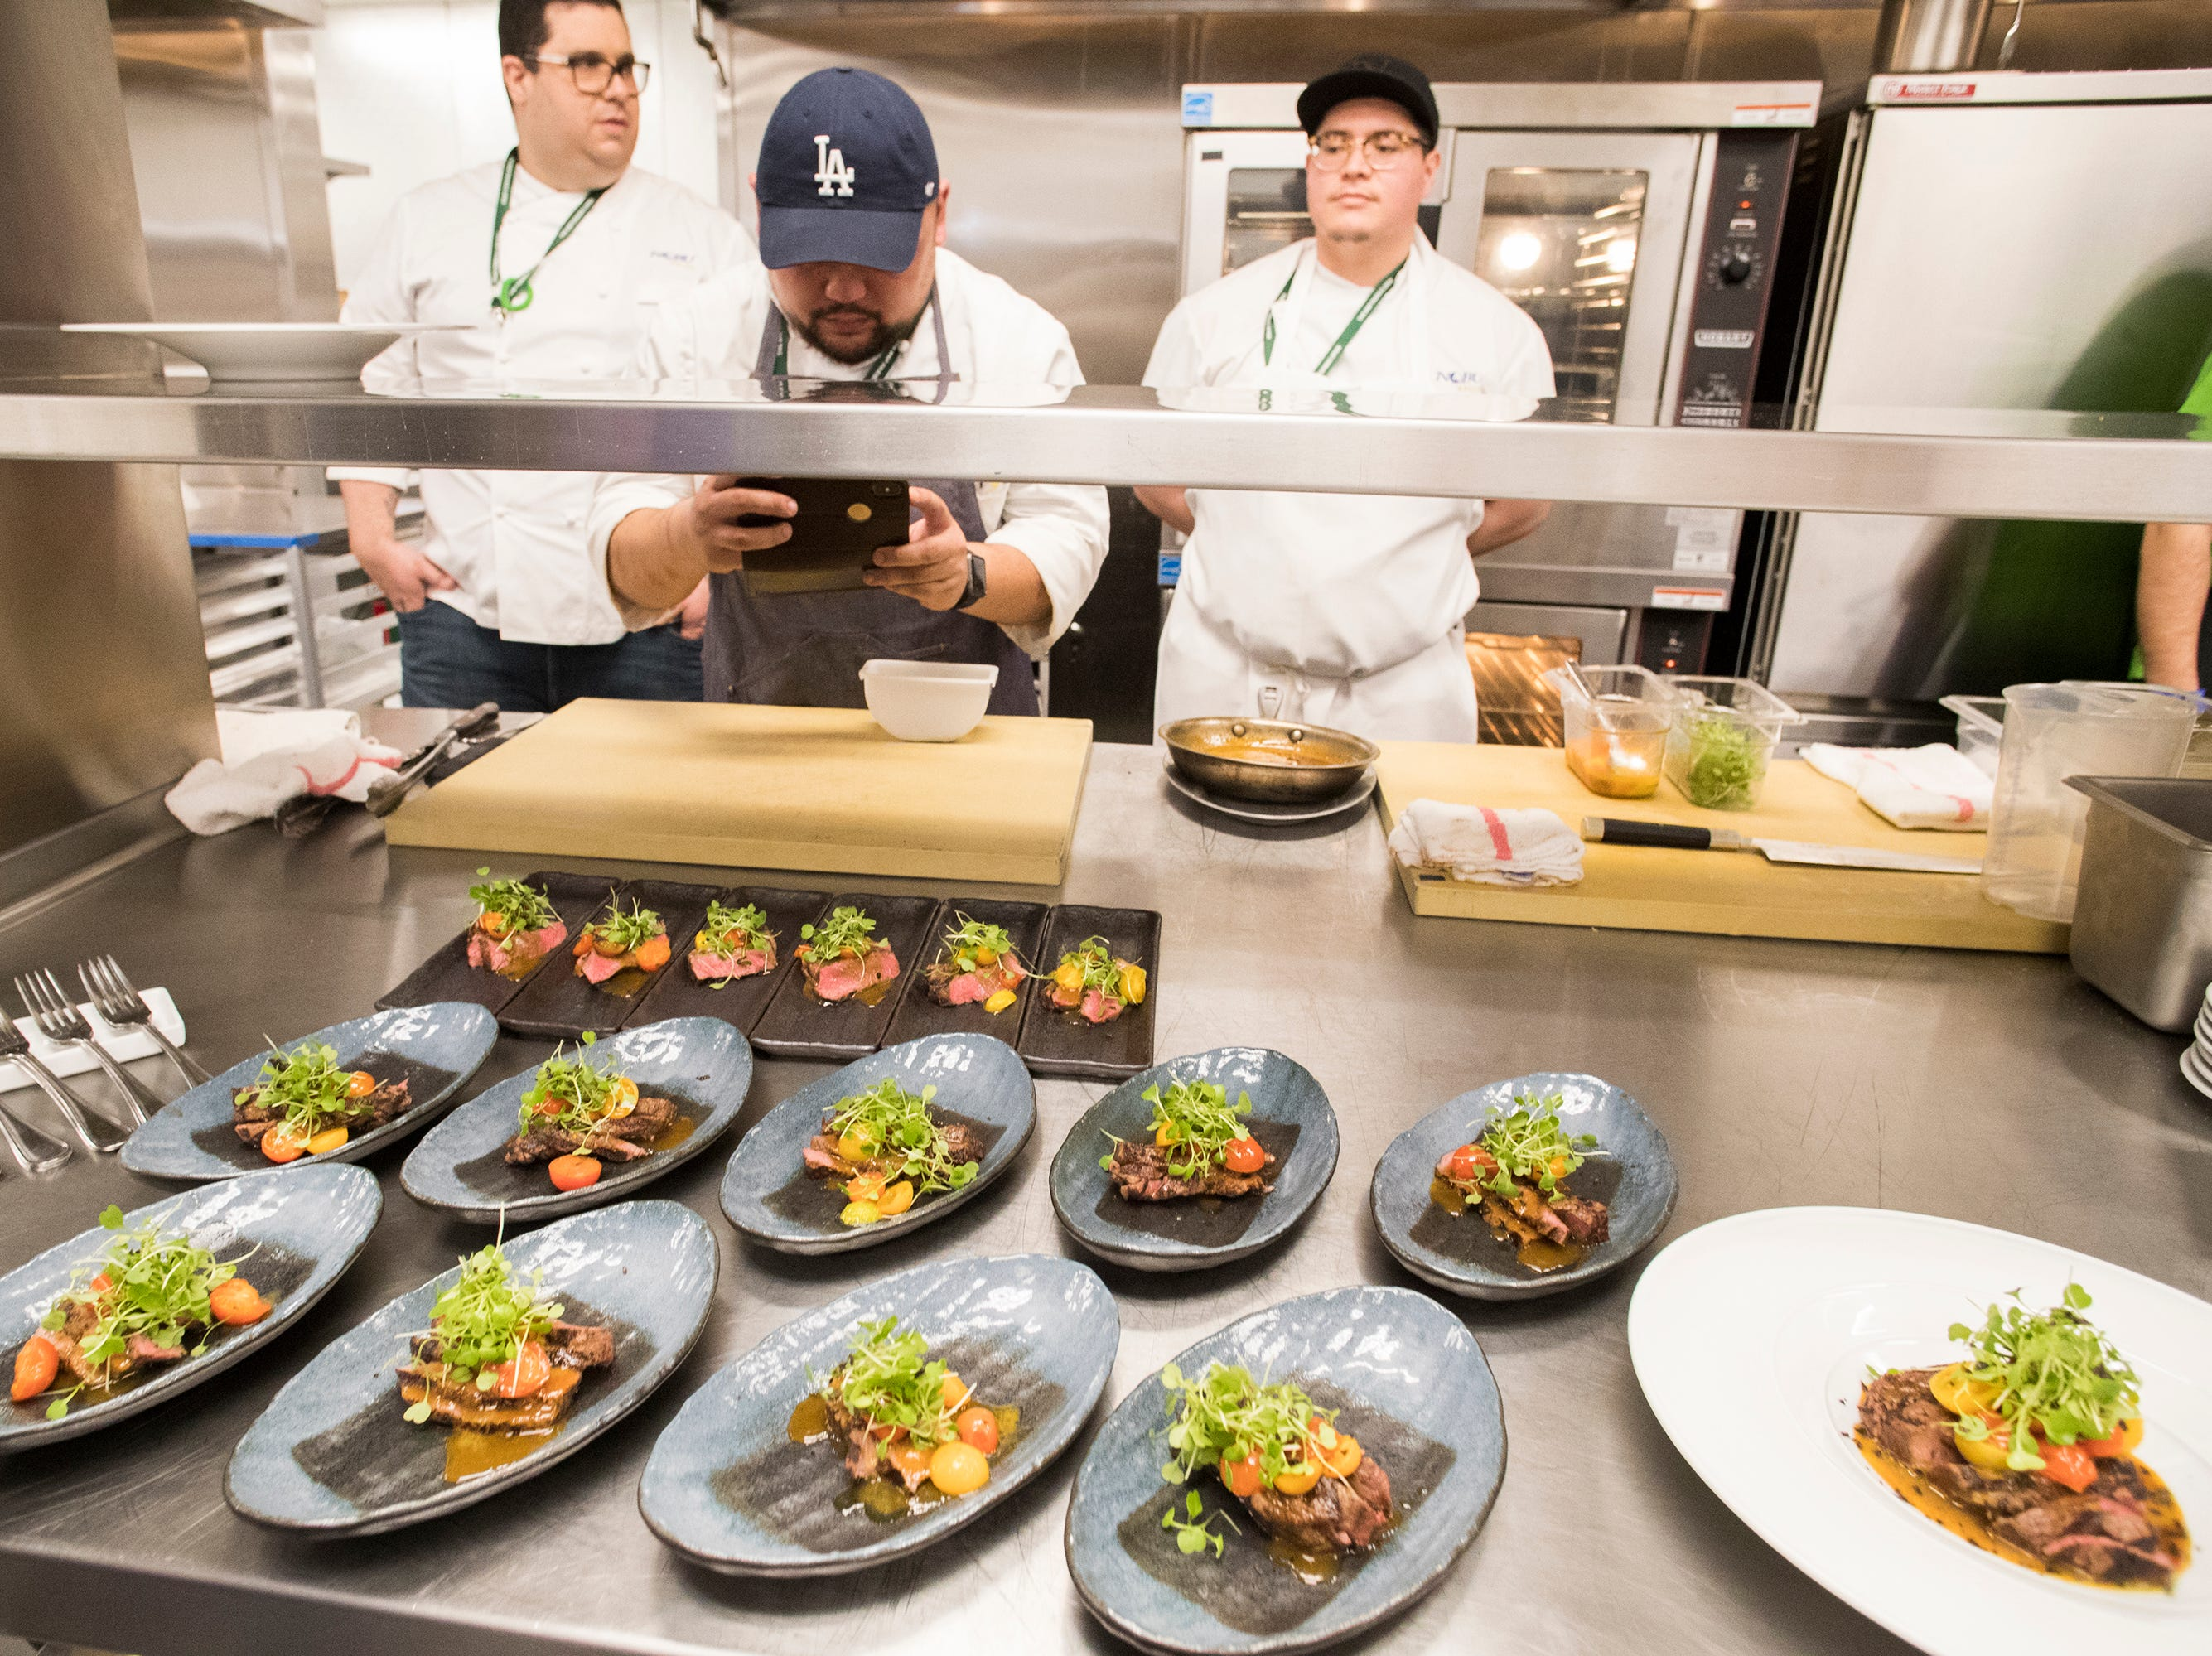 Nobu restaurant offers food at the 2019 BNP Paribas Open at the Indian Wells Tennis Garden.